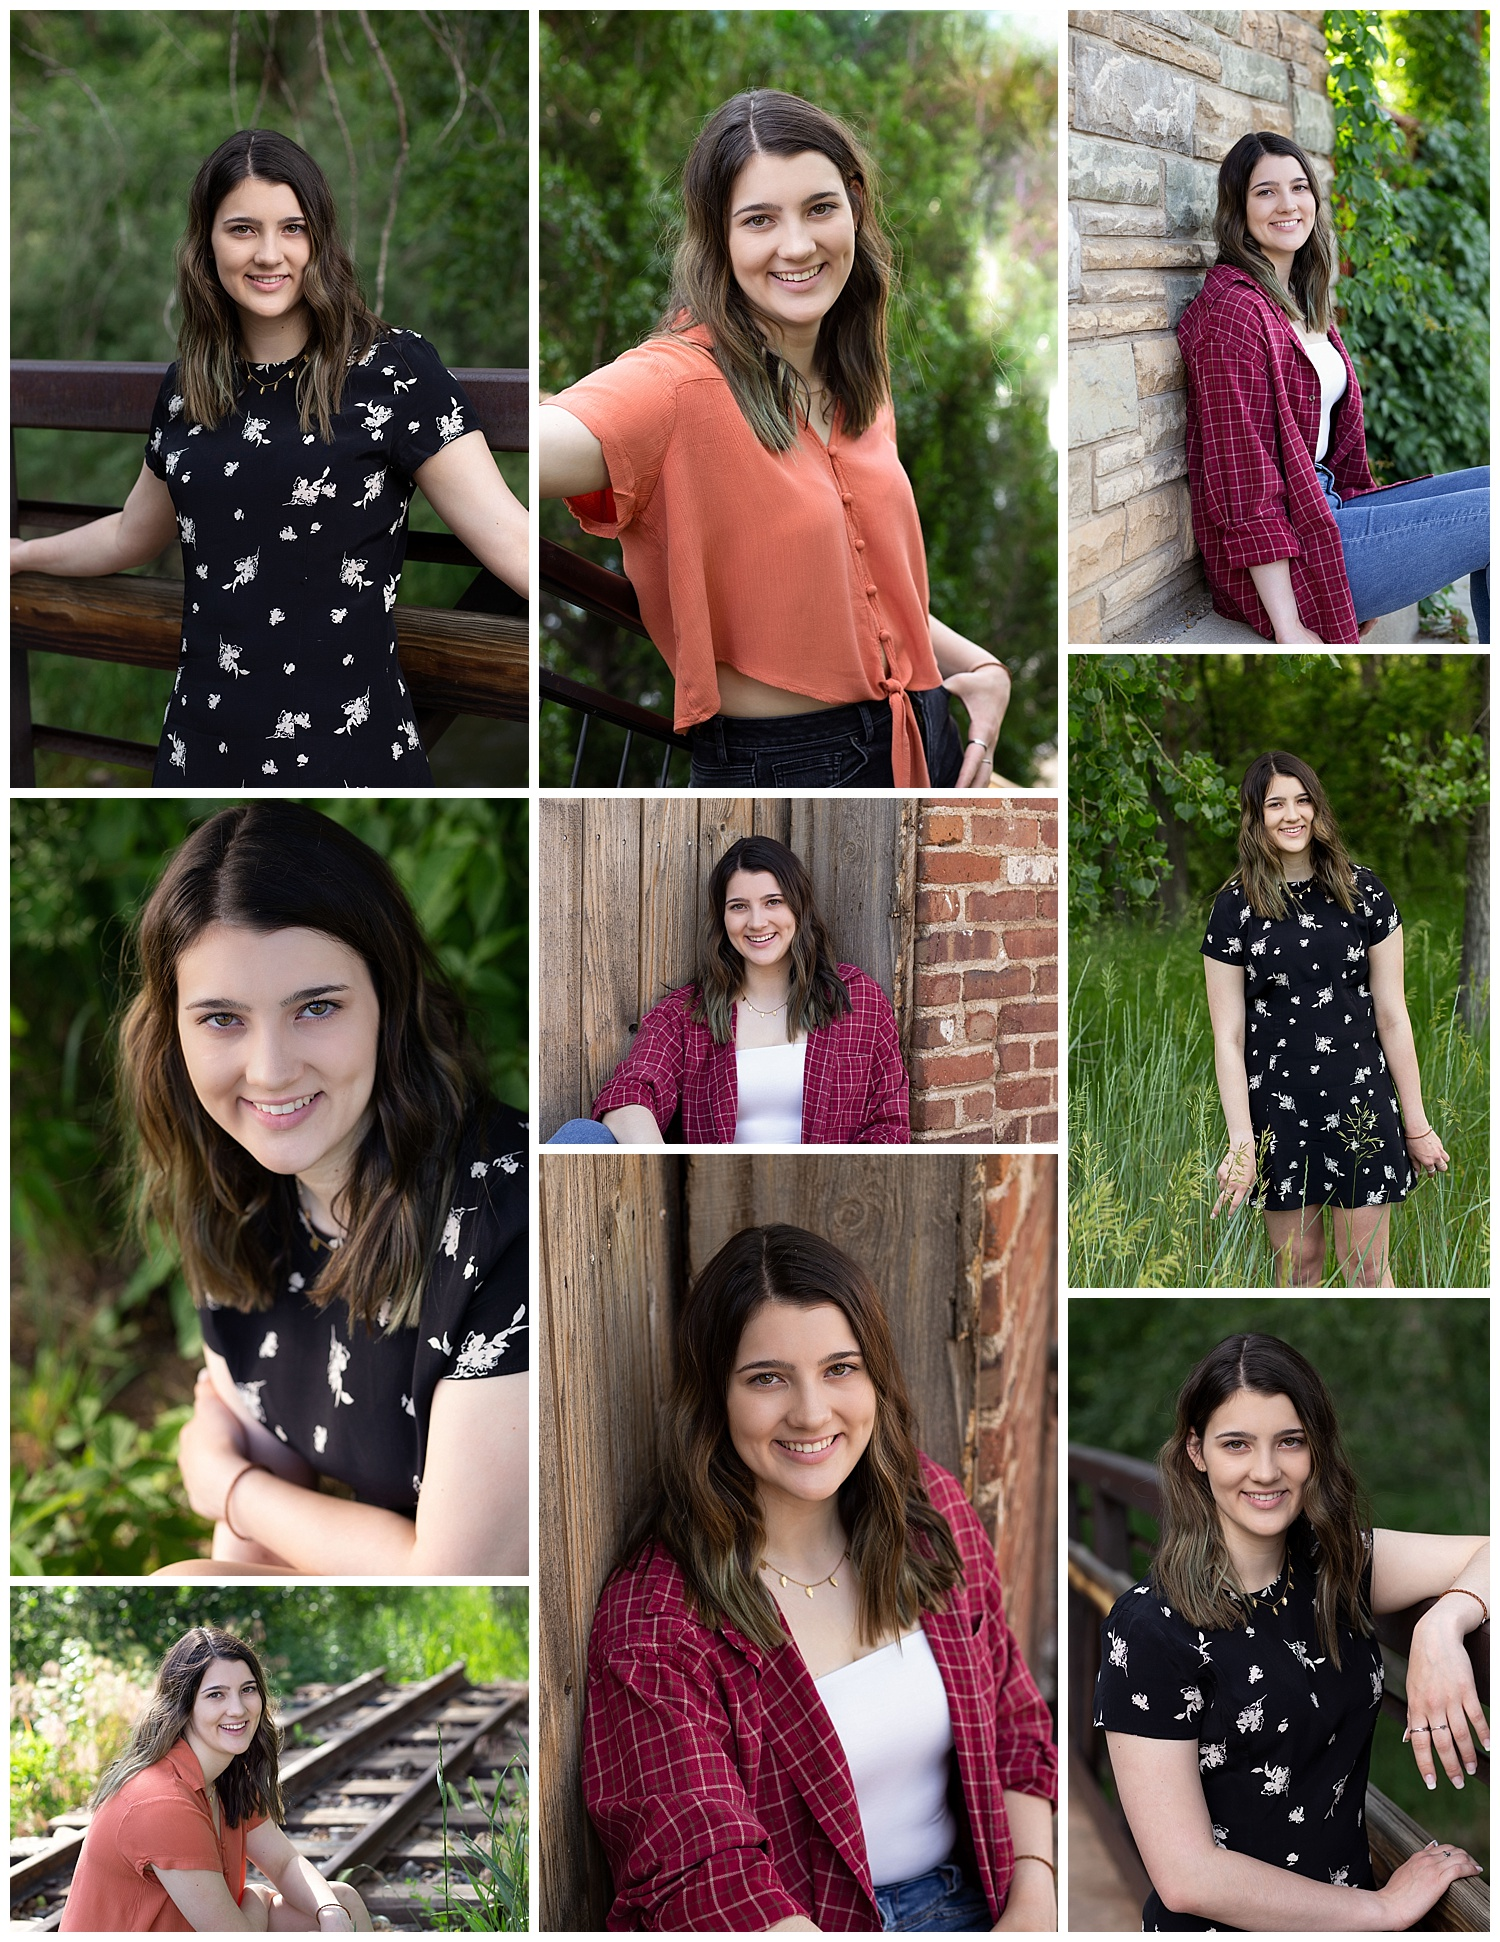 Kate had her high school senior photos taken on June 29, 2019…Kate did a Best Friends session with Nichole (featured below!)